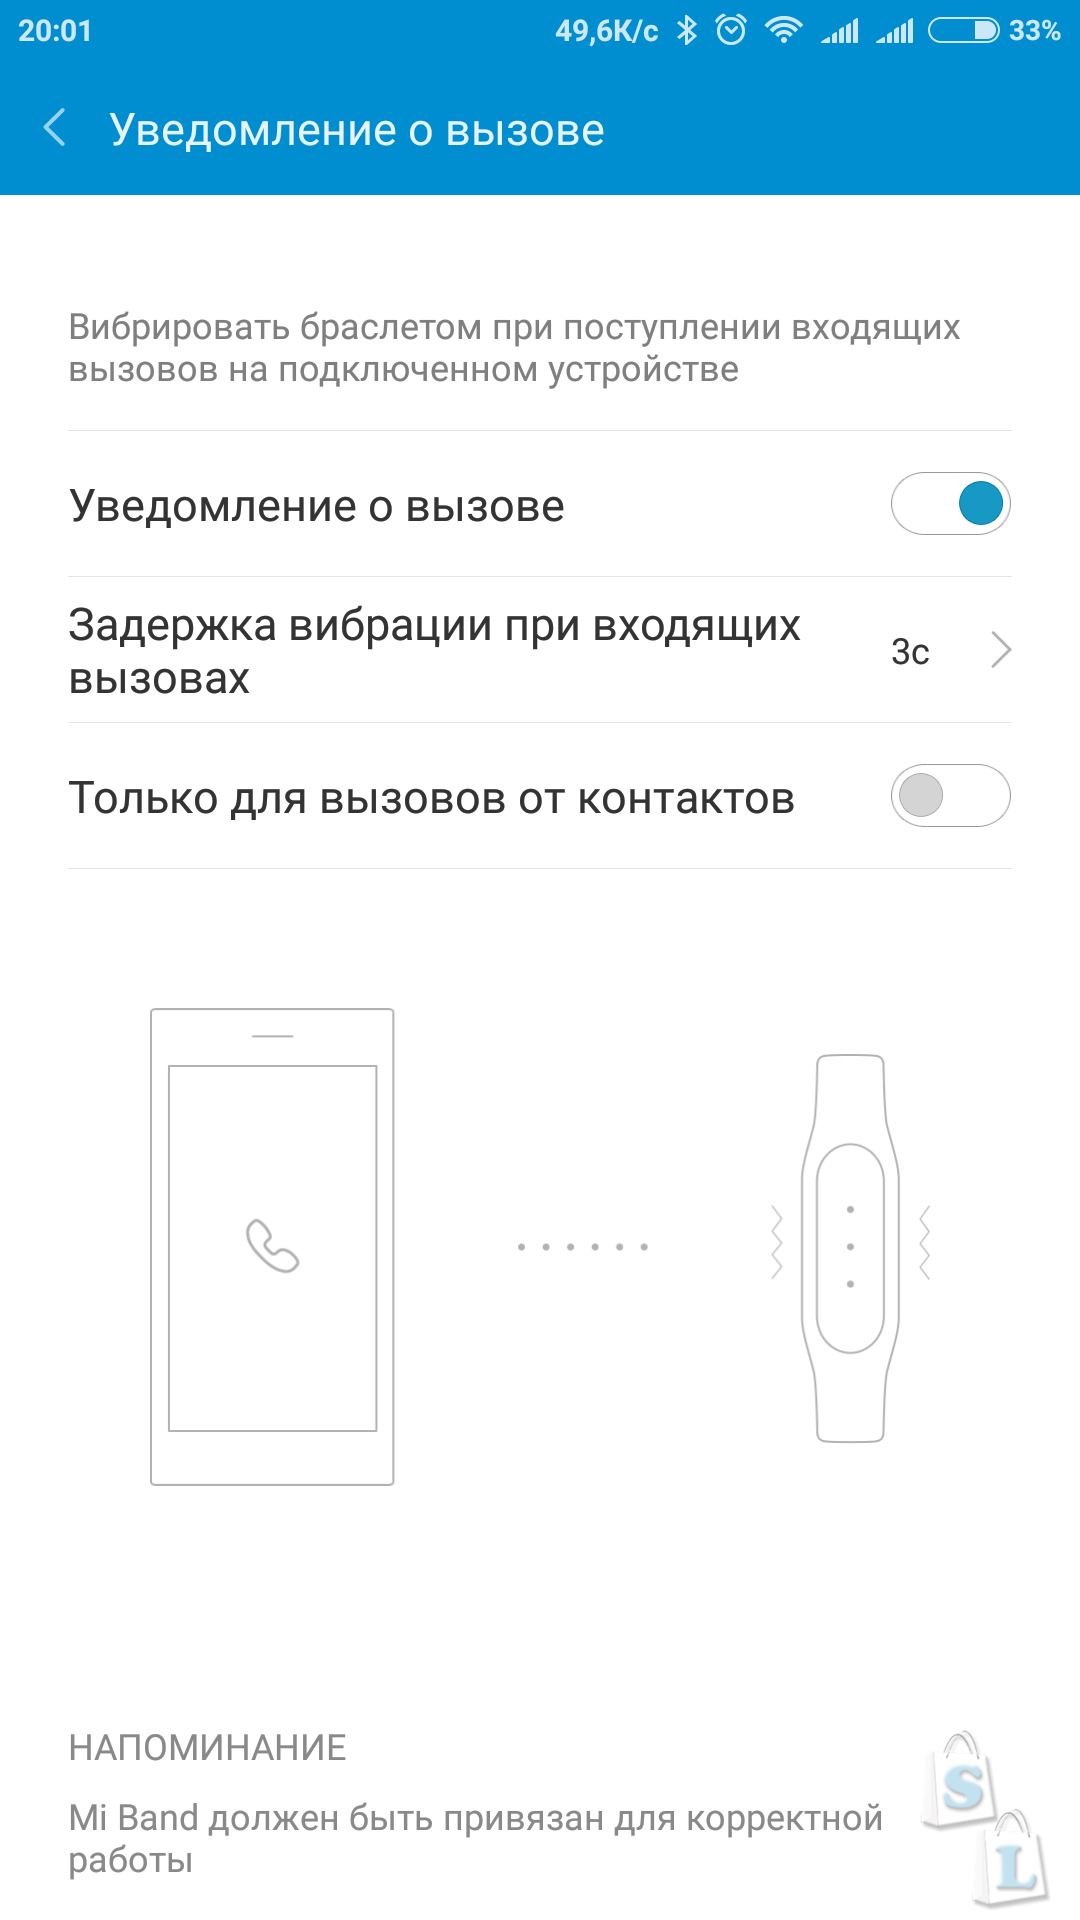 EverBuying: Обзор смартбраслета Xiaomi Mi Band 1S Smart Heart Rate